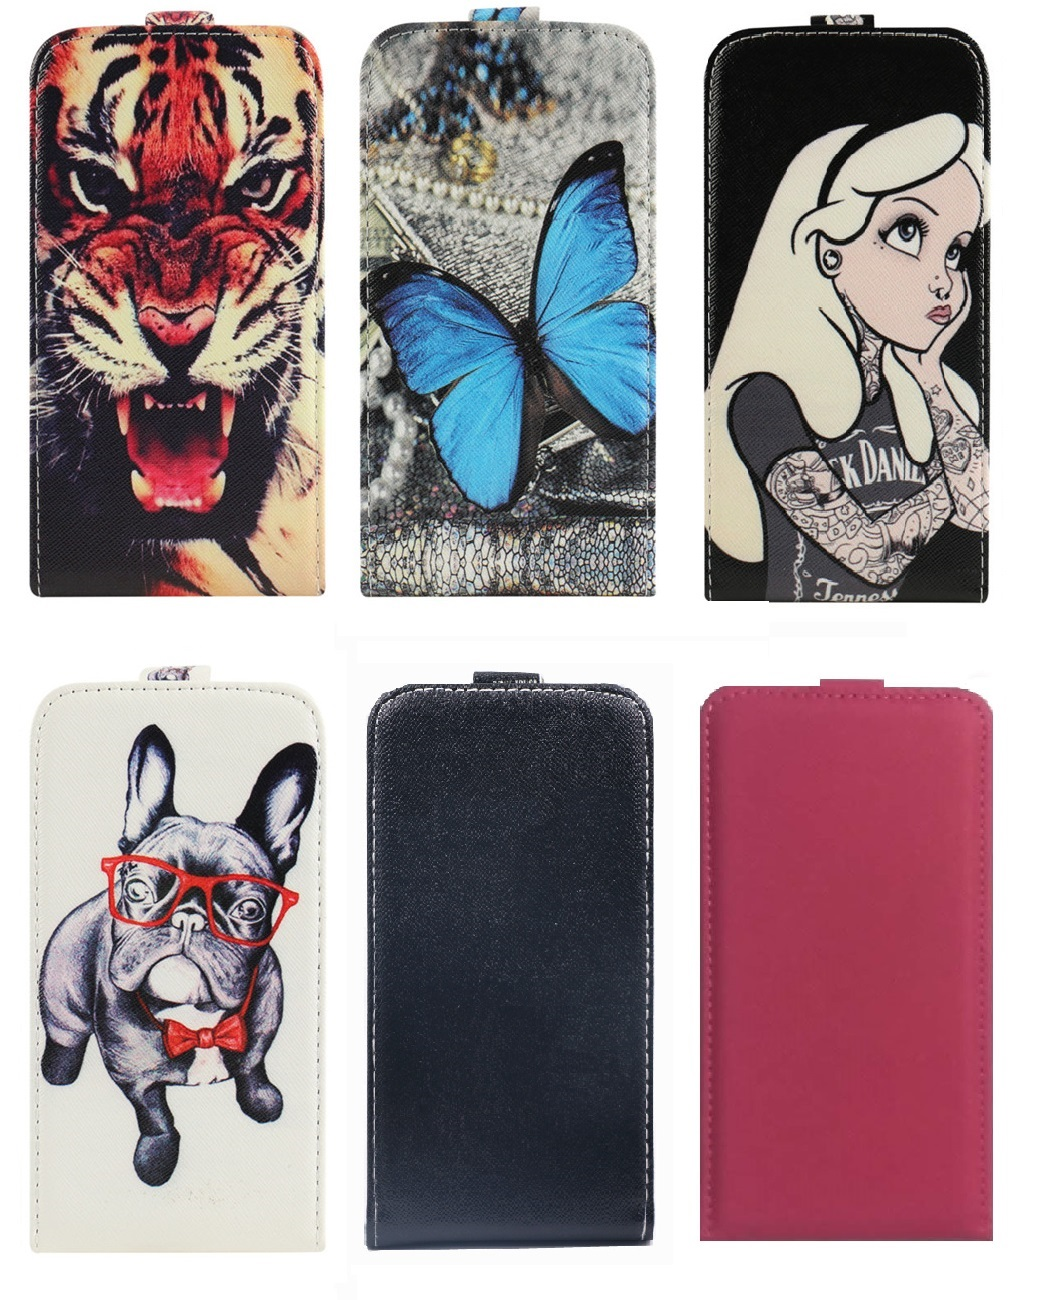 Yooyour <font><b>Case</b></font> cover Skin <font><b>Case</b></font> Cover <font><b>For</b></font> <font><b>Philips</b></font> S326 X586 S337 S396 S616 Xenium V377 V526 <font><b>V787</b></font> S388 S398 W3509 image